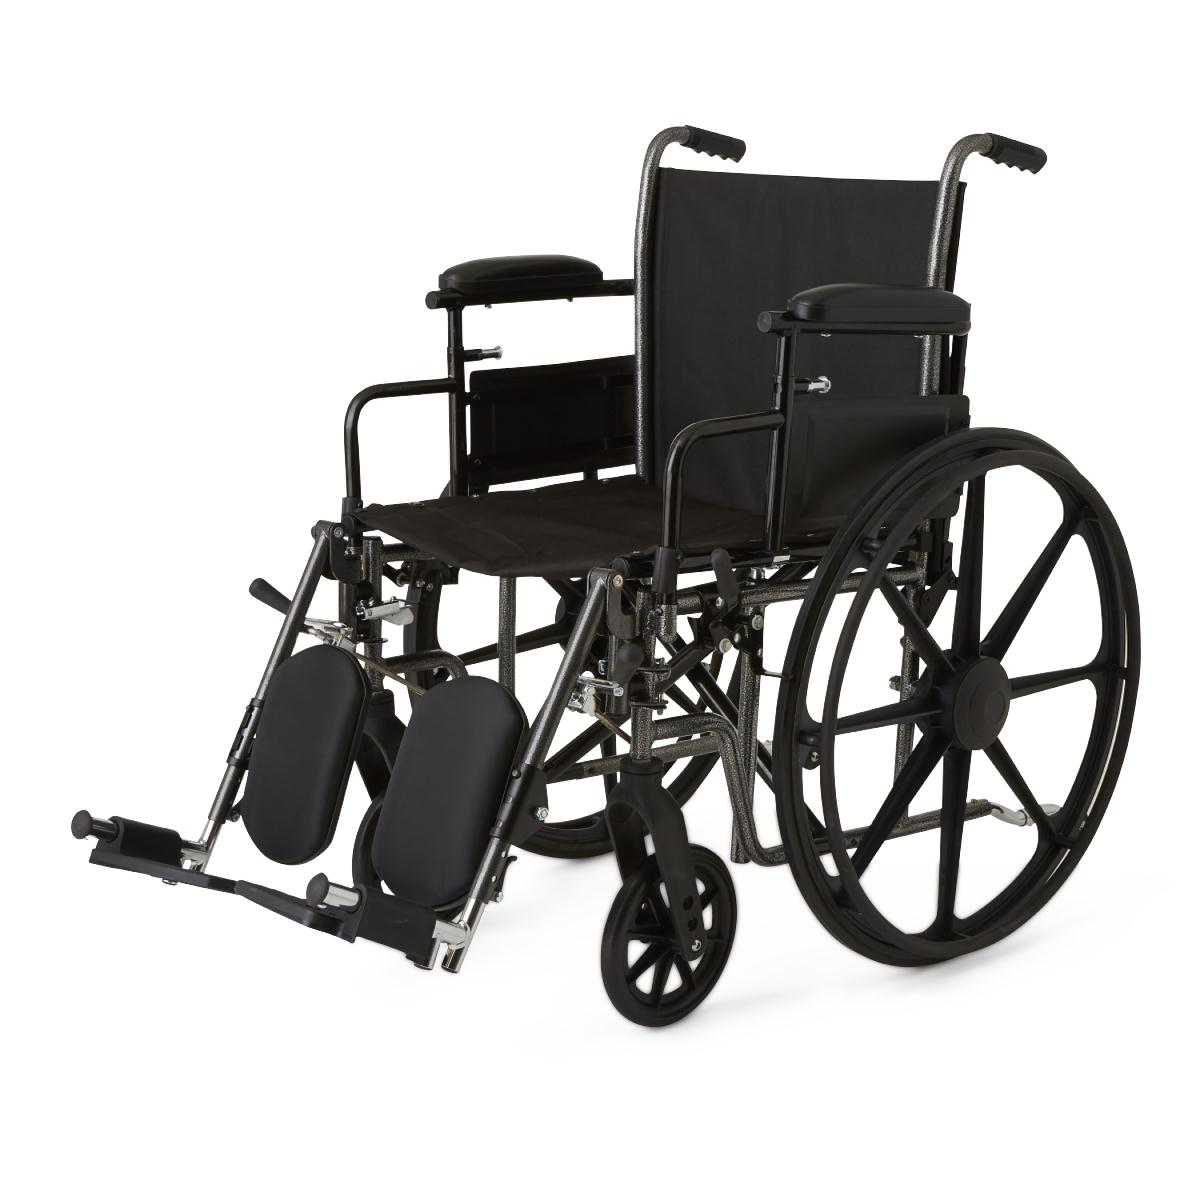 Medline K3 Basic Plus Manual Wheelchair Parts